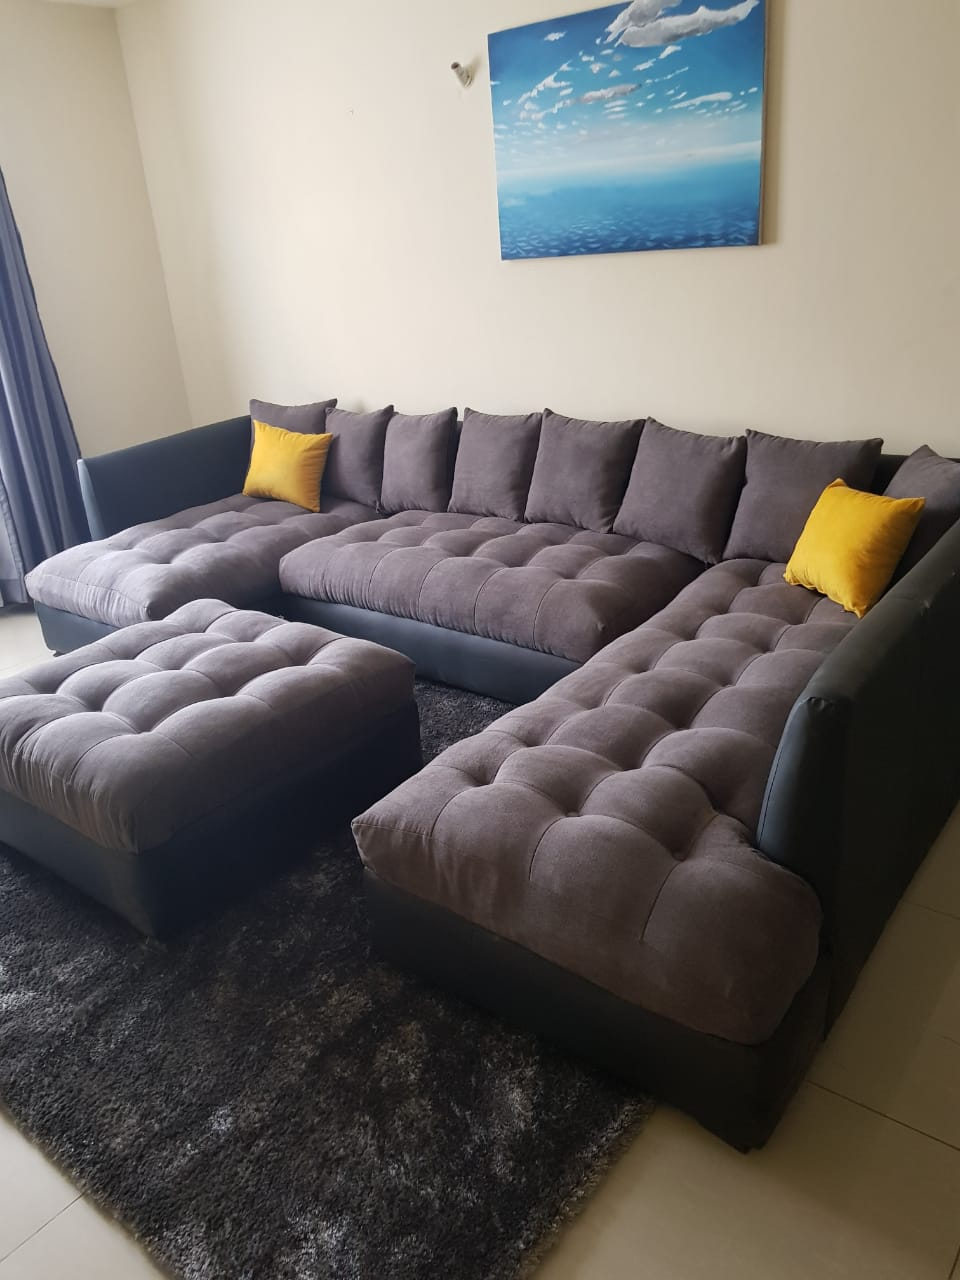 Furnished apartment Nakuru Milimani Area